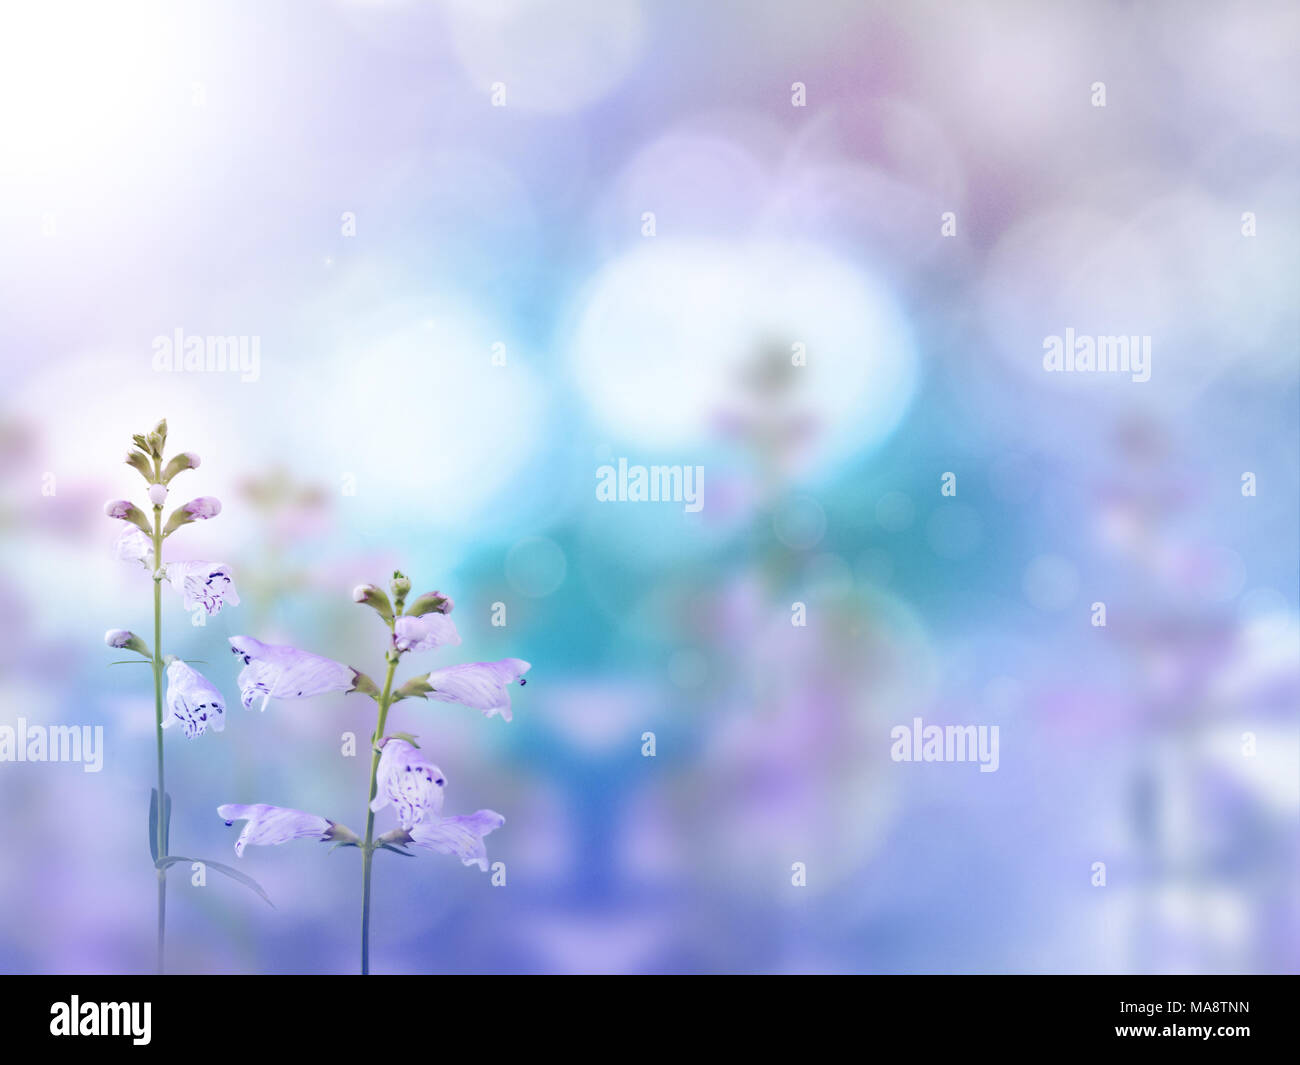 Beautiful light purple flowers on the colorful blurred background. Floral desktop. - Stock Image